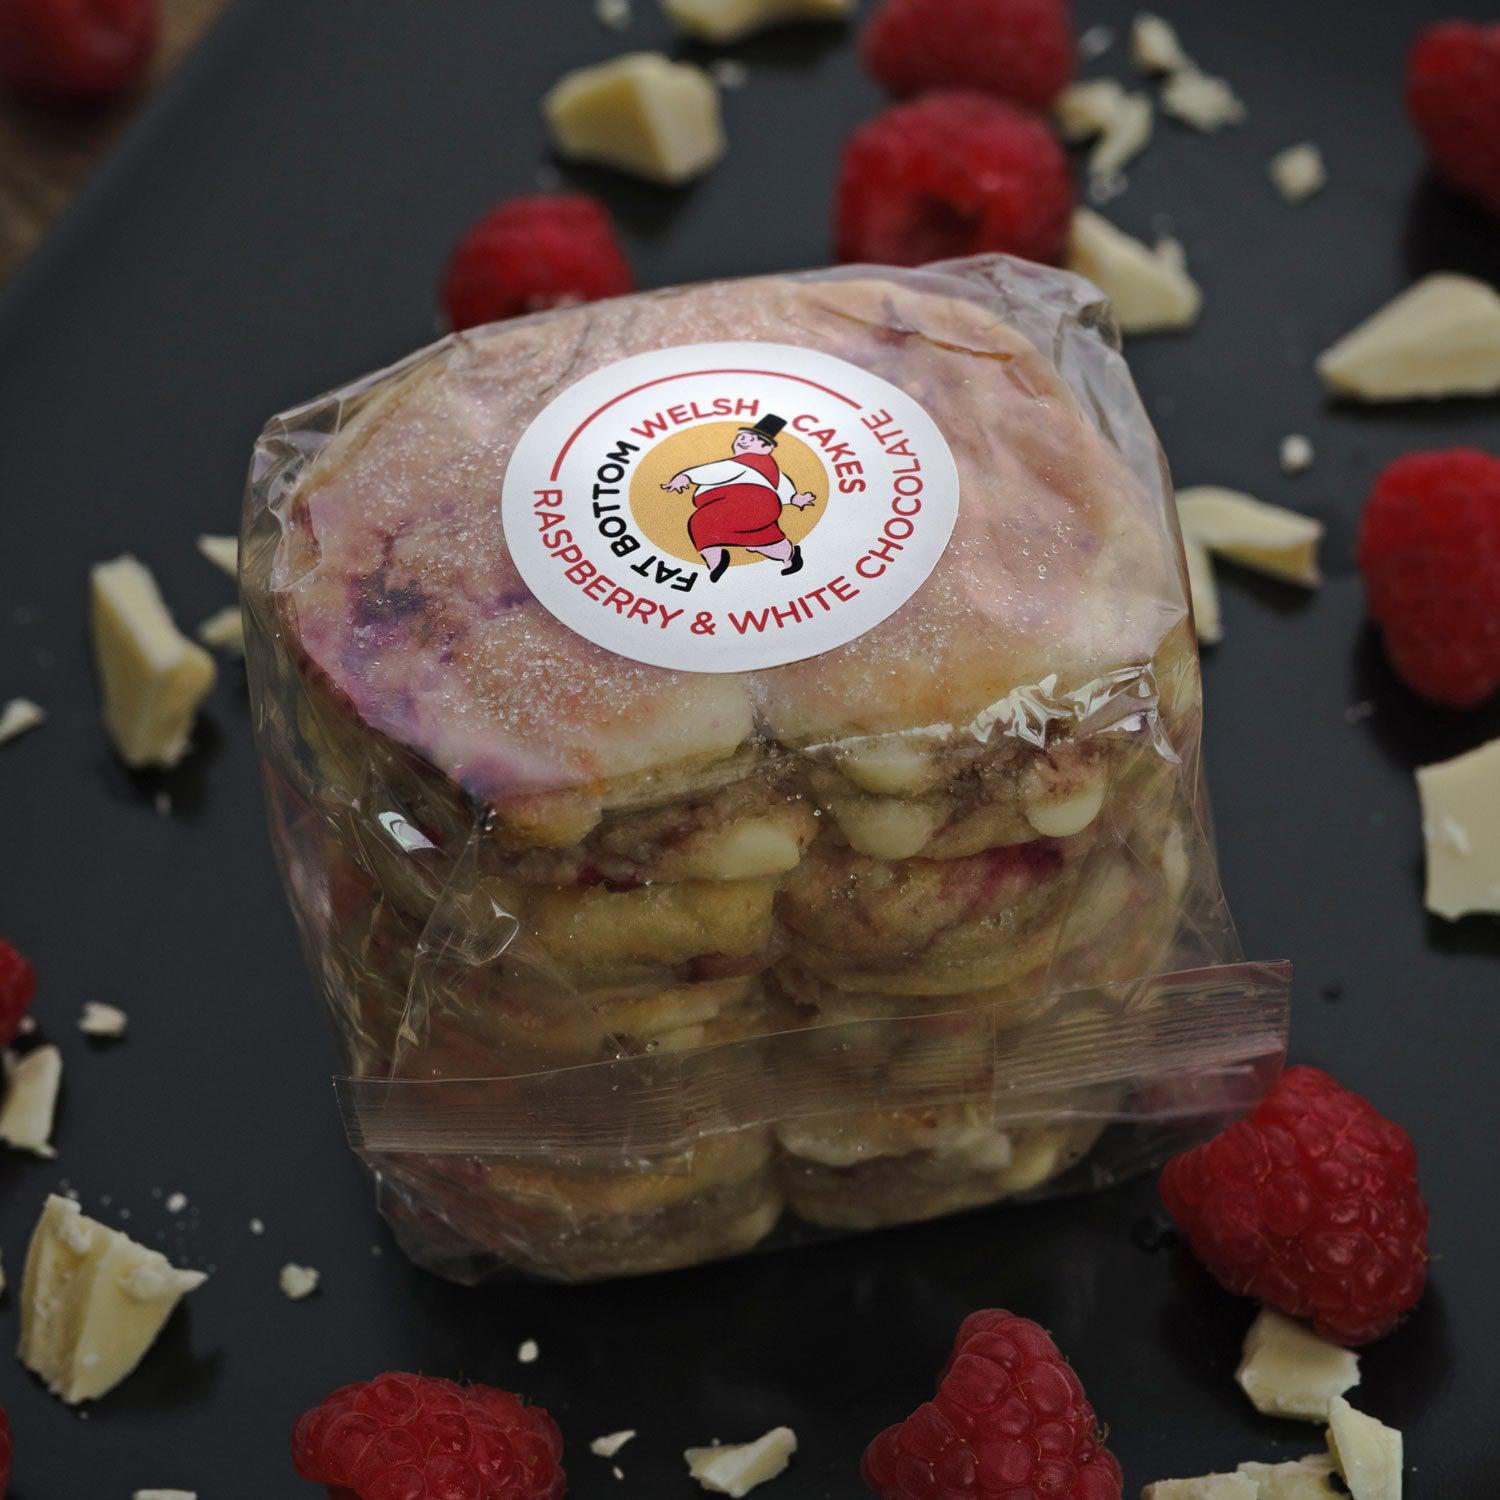 Welsh Cakes - Fat Bottom - Raspberry & White Chocolate (1st Class Postage Included)